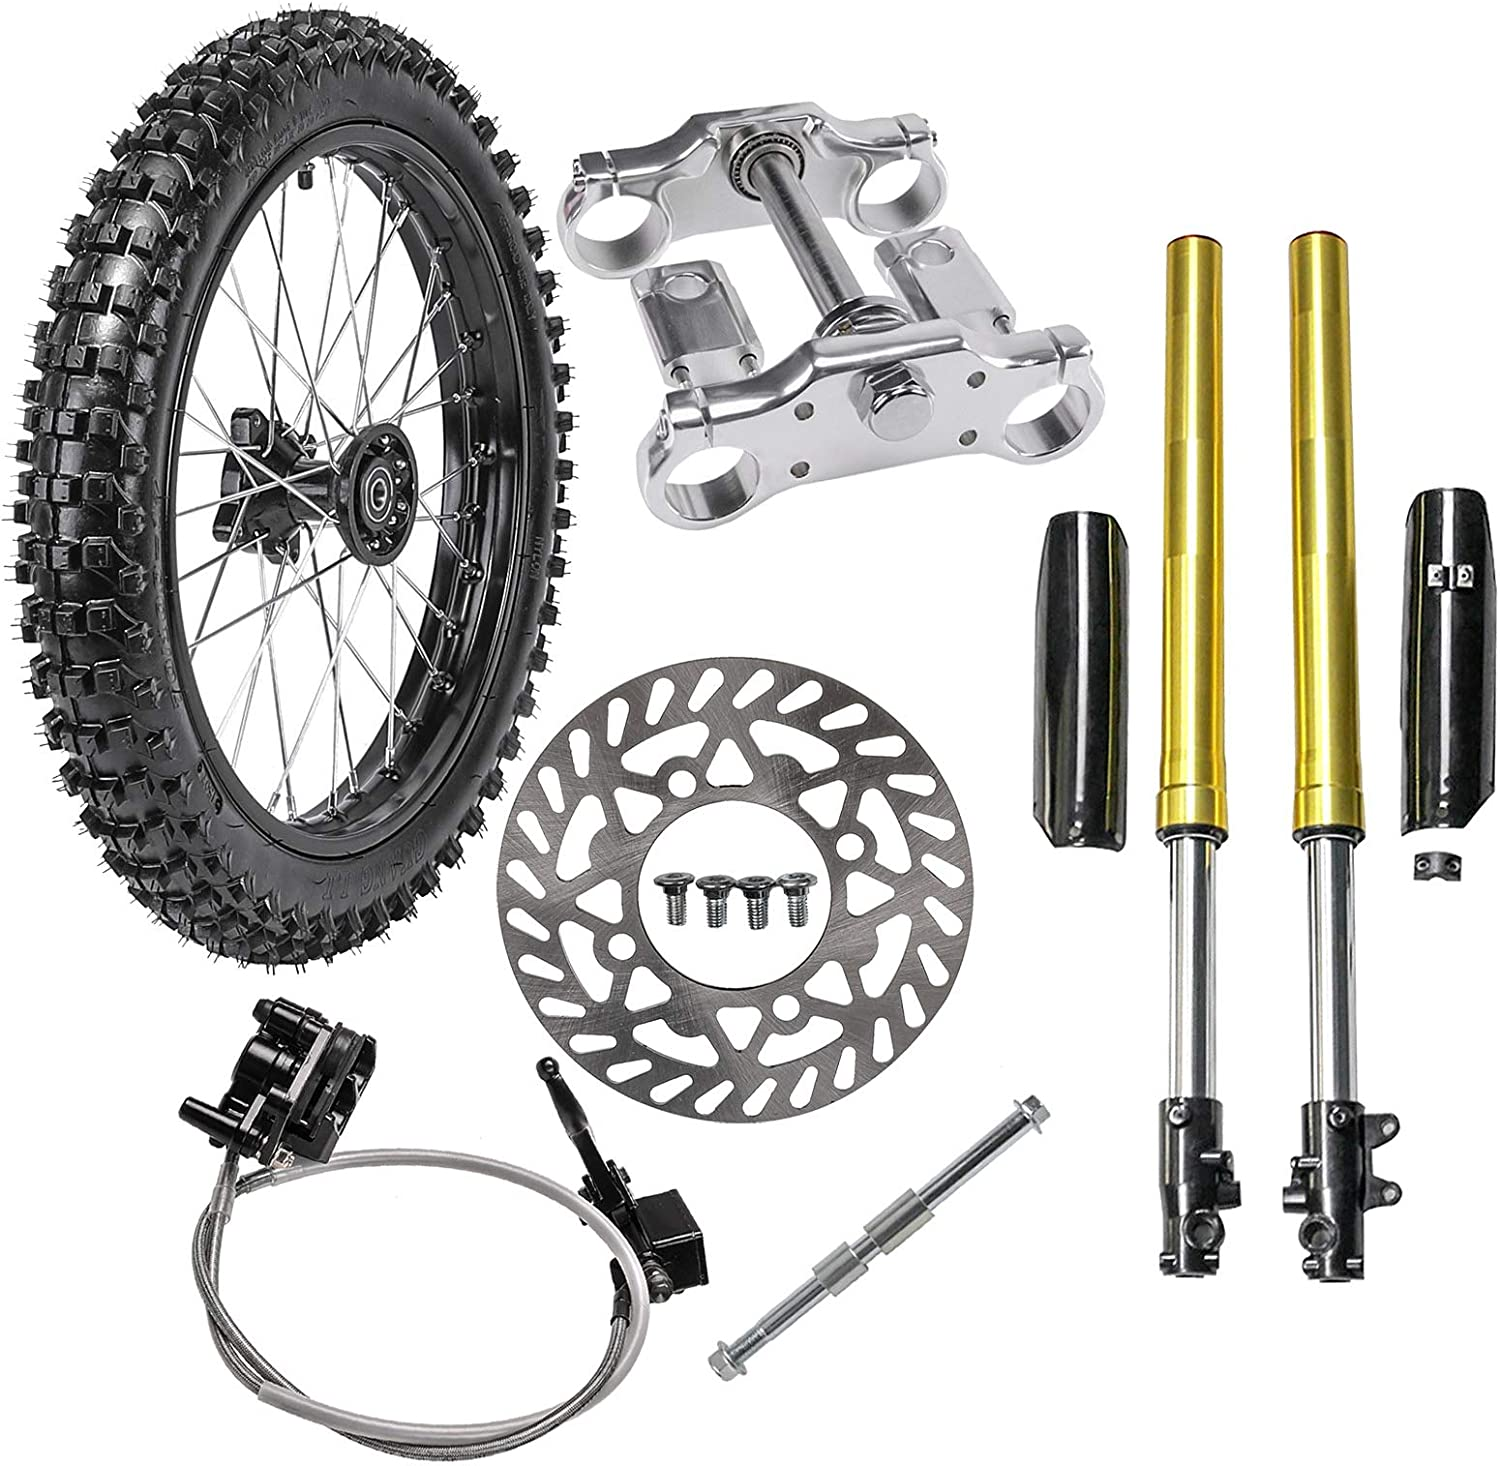 WPHMOTO 70 100-17 Finally resale start Front Wheel Tire Rim With Max 46% OFF 15mm Brake Bearing